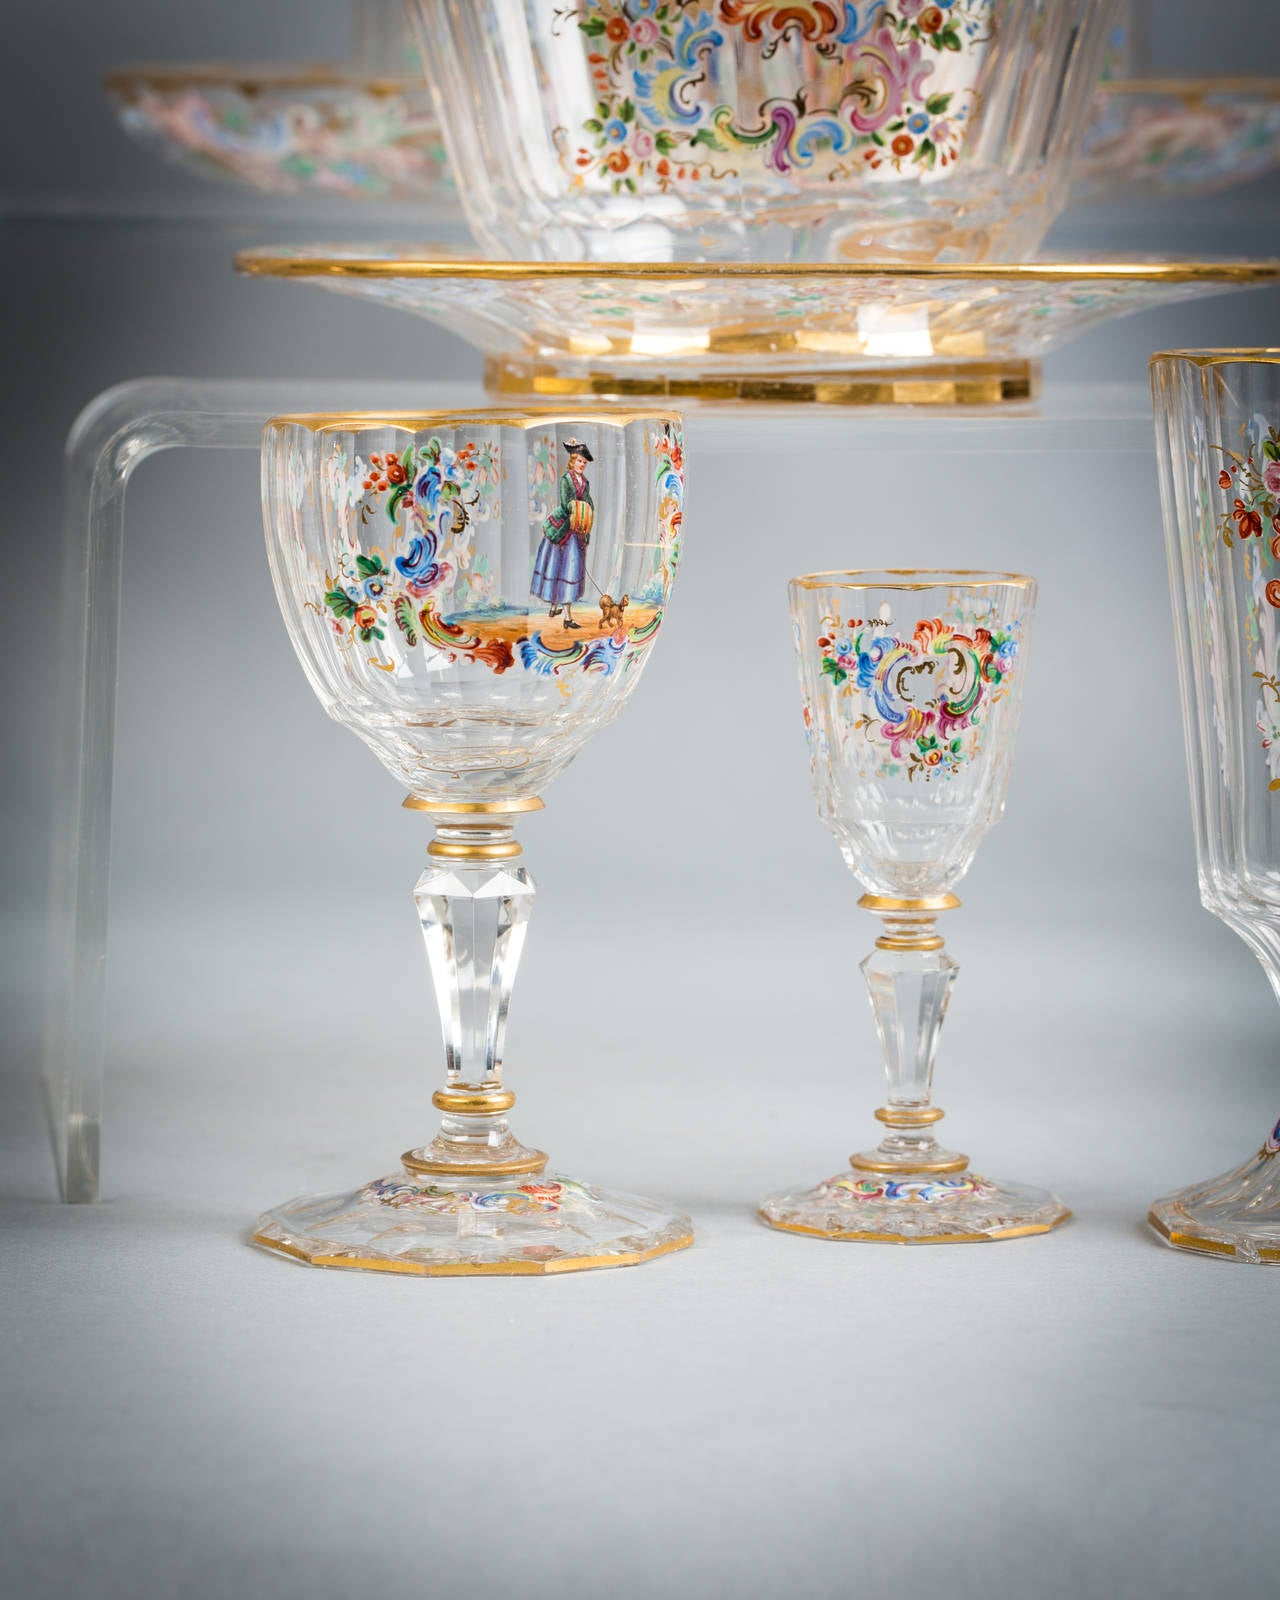 Pair of large water jugs, one smaller jug, pair of vases, decanter and stopper, liquor decanter and stopper, four liquor glasses, twelve water glasses, twelve champagne, eight wine glasses, three finger bowls and stands, tazza, set four